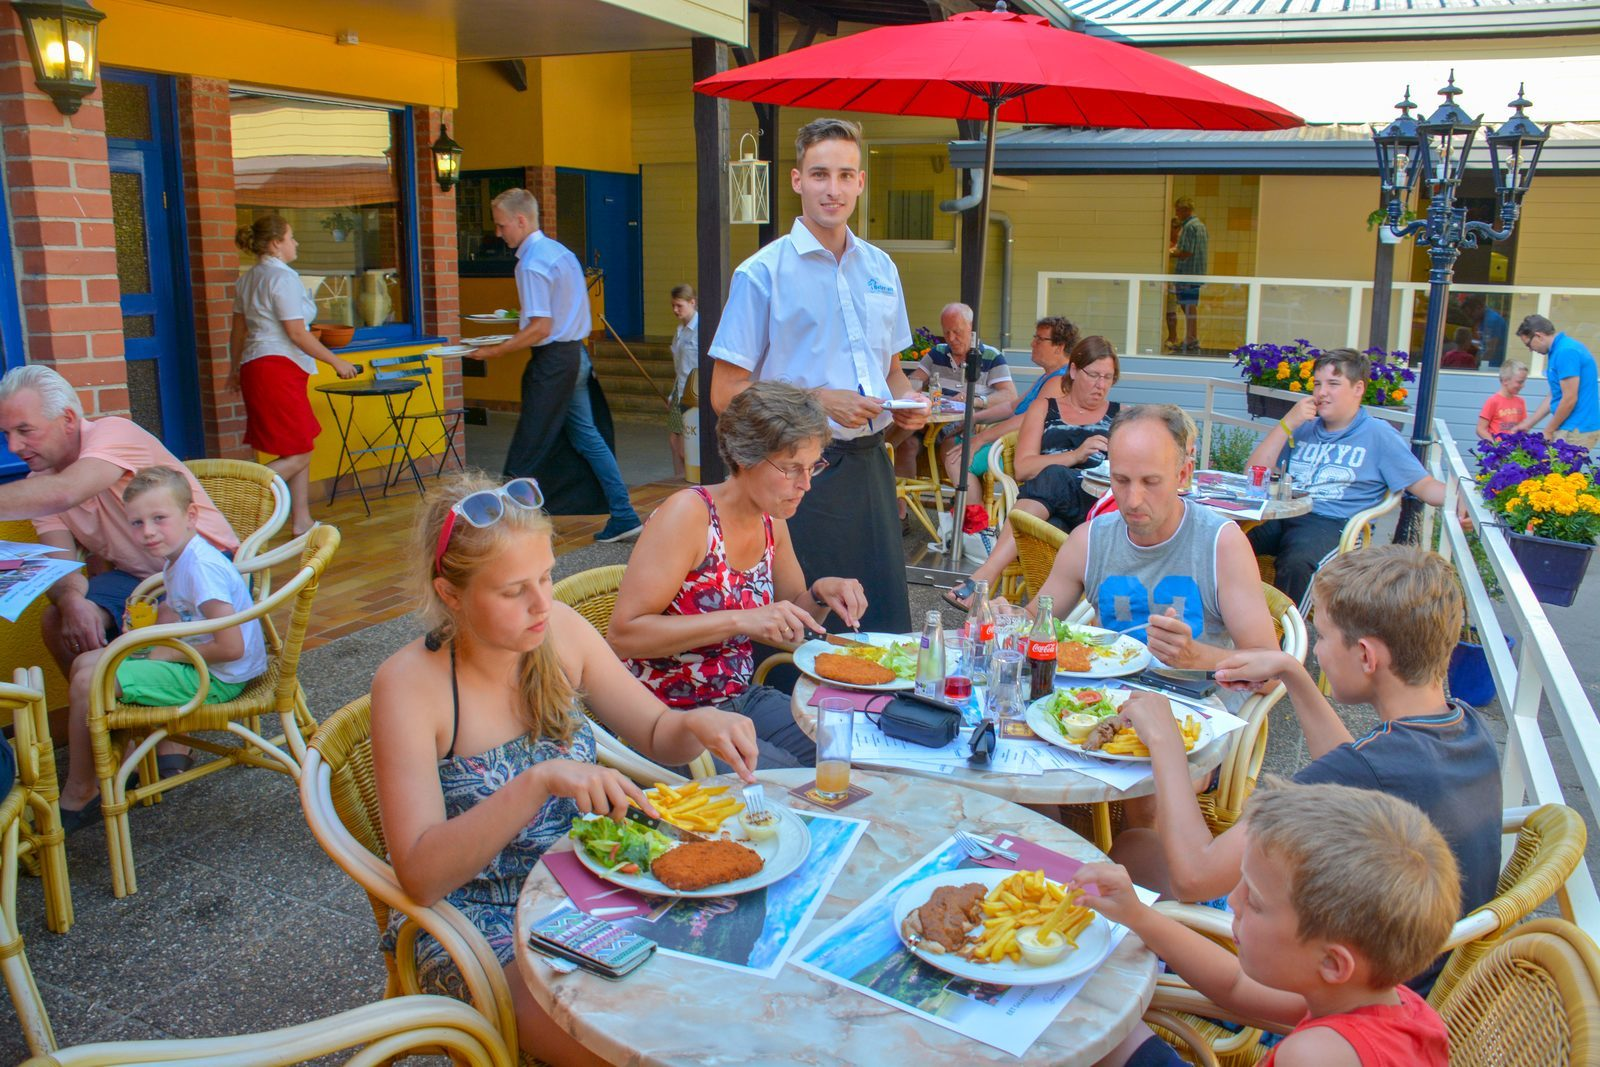 Restaurant enjoying a pleasant time with family